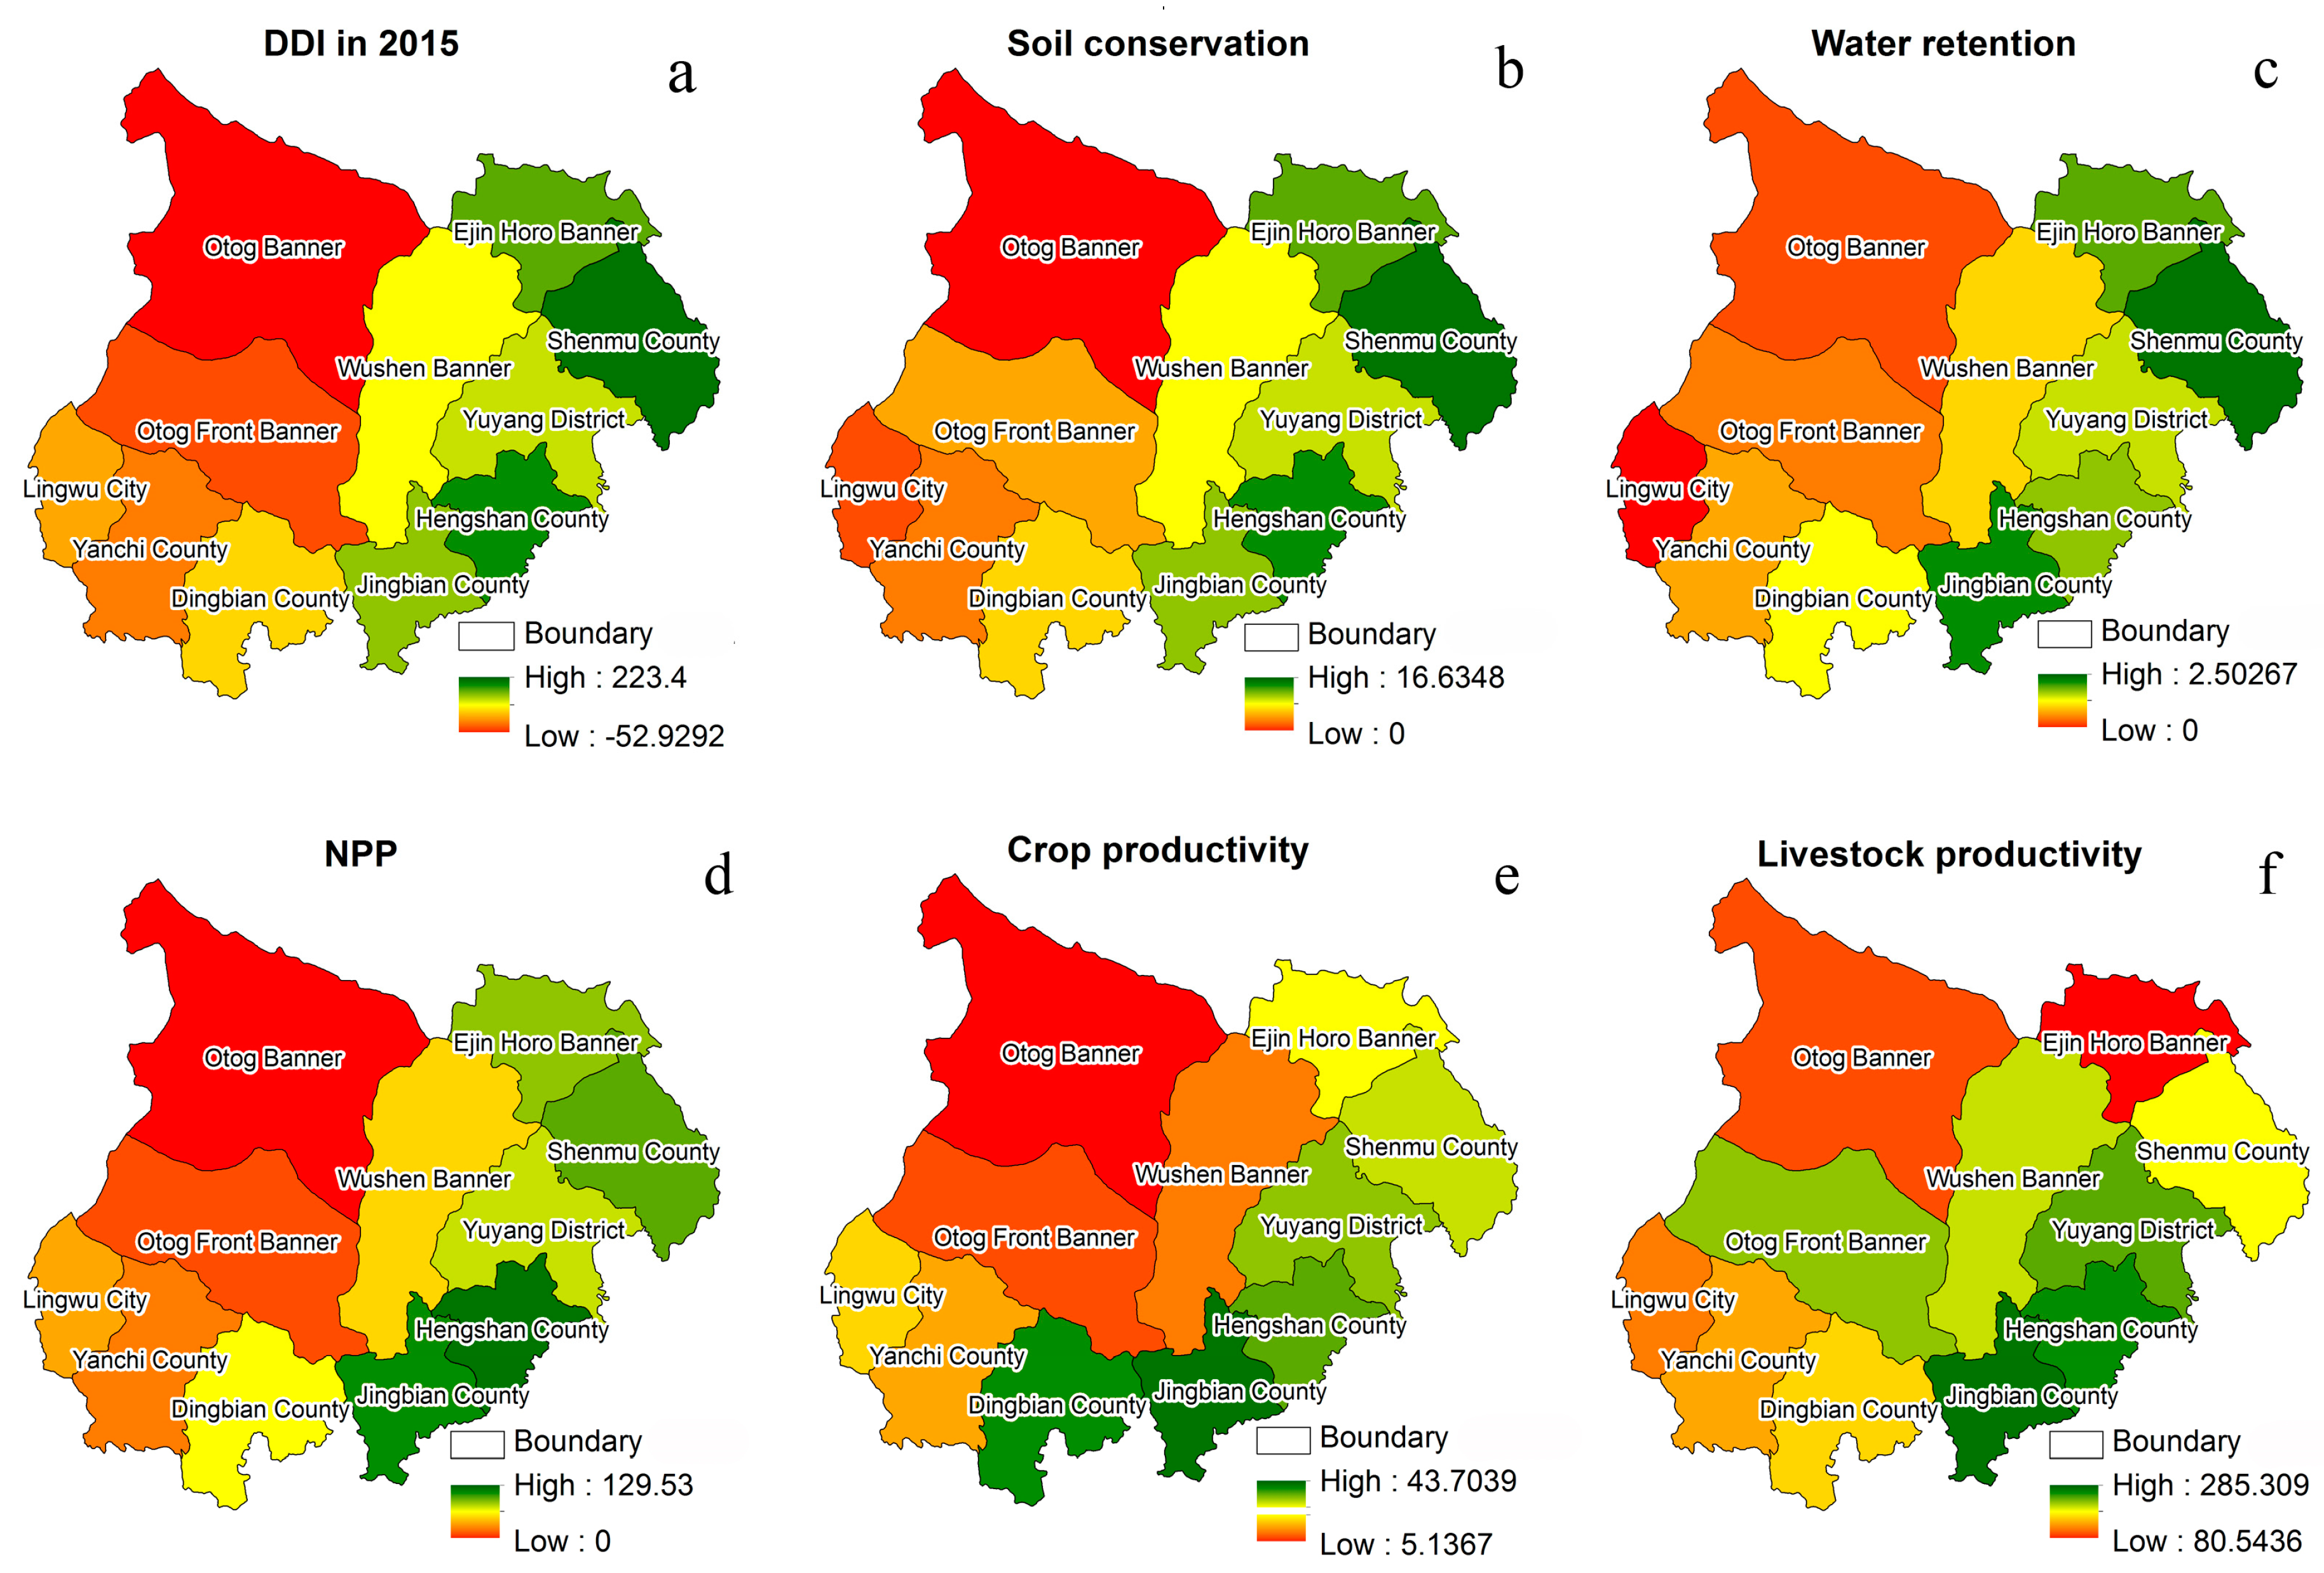 Sustainability Free FullText Spatiotemporal Patterns Of - Desertification Us Soil Erosion Map Us